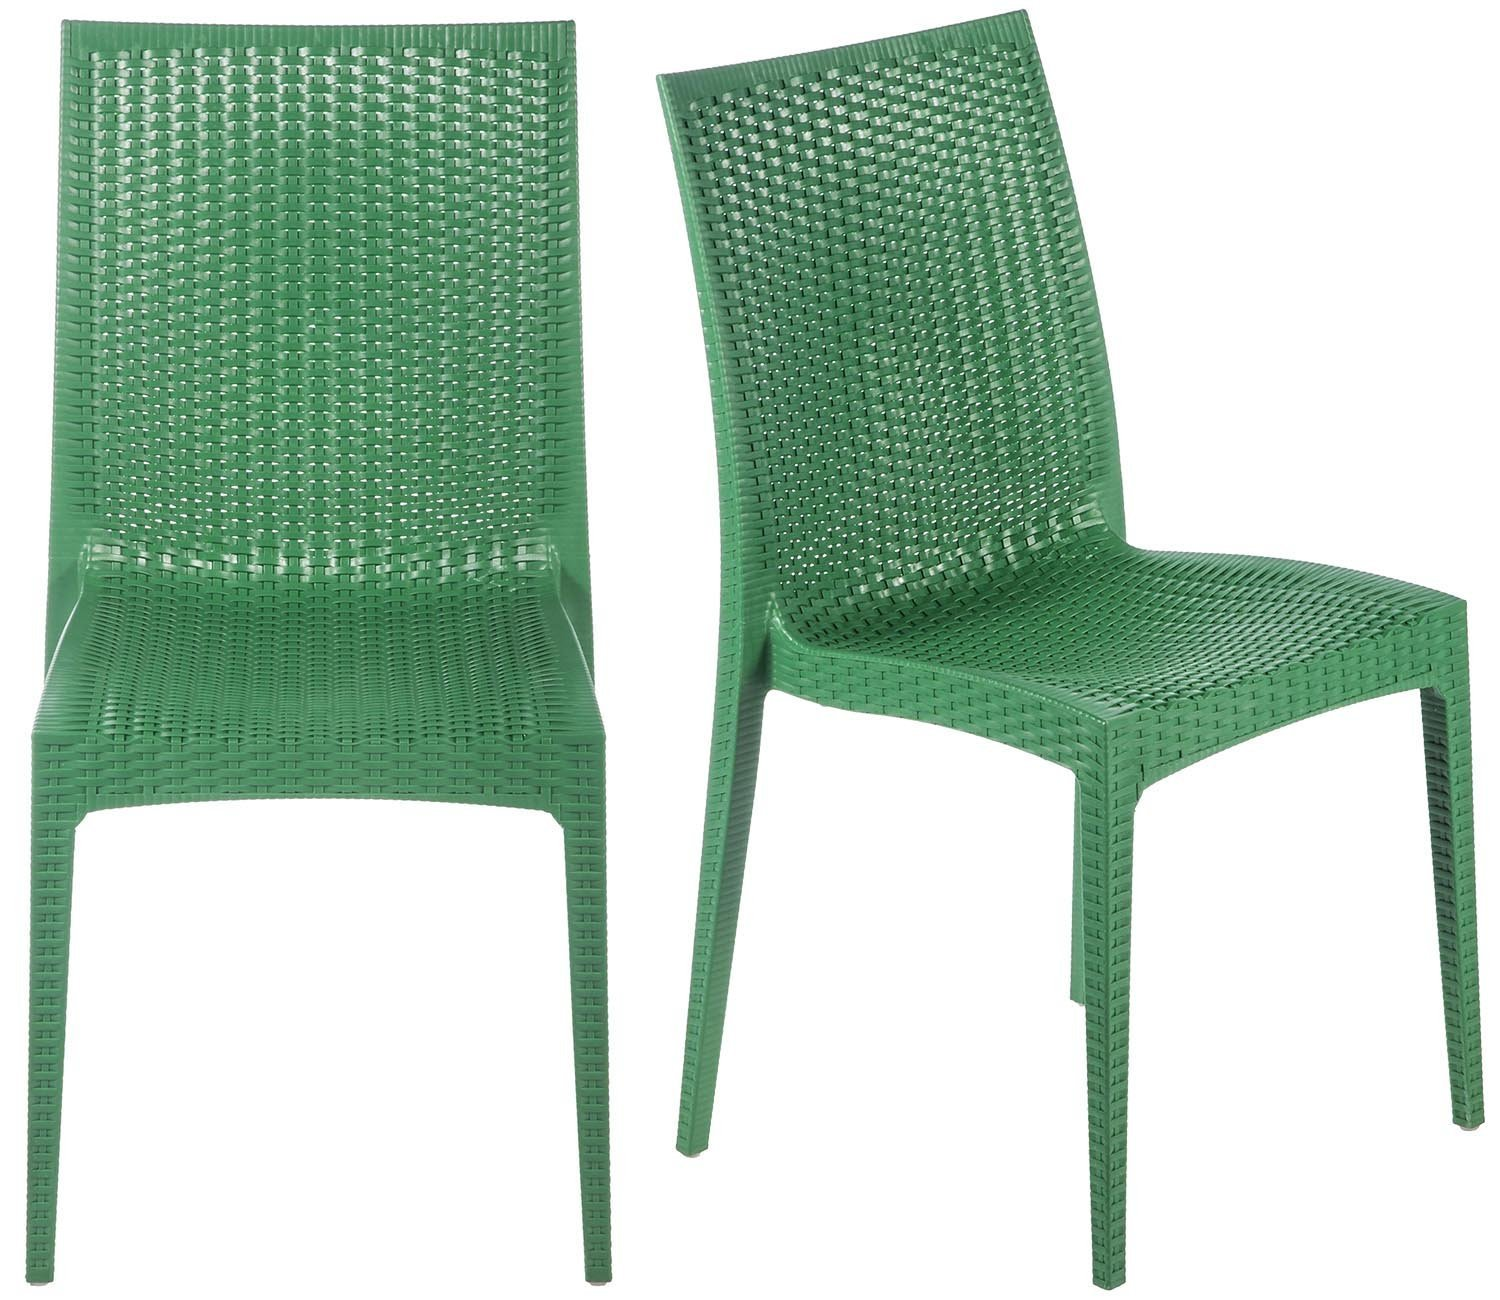 Merax Rattan Style Stackable Plastic Dining Chairs, Set of 2, Green